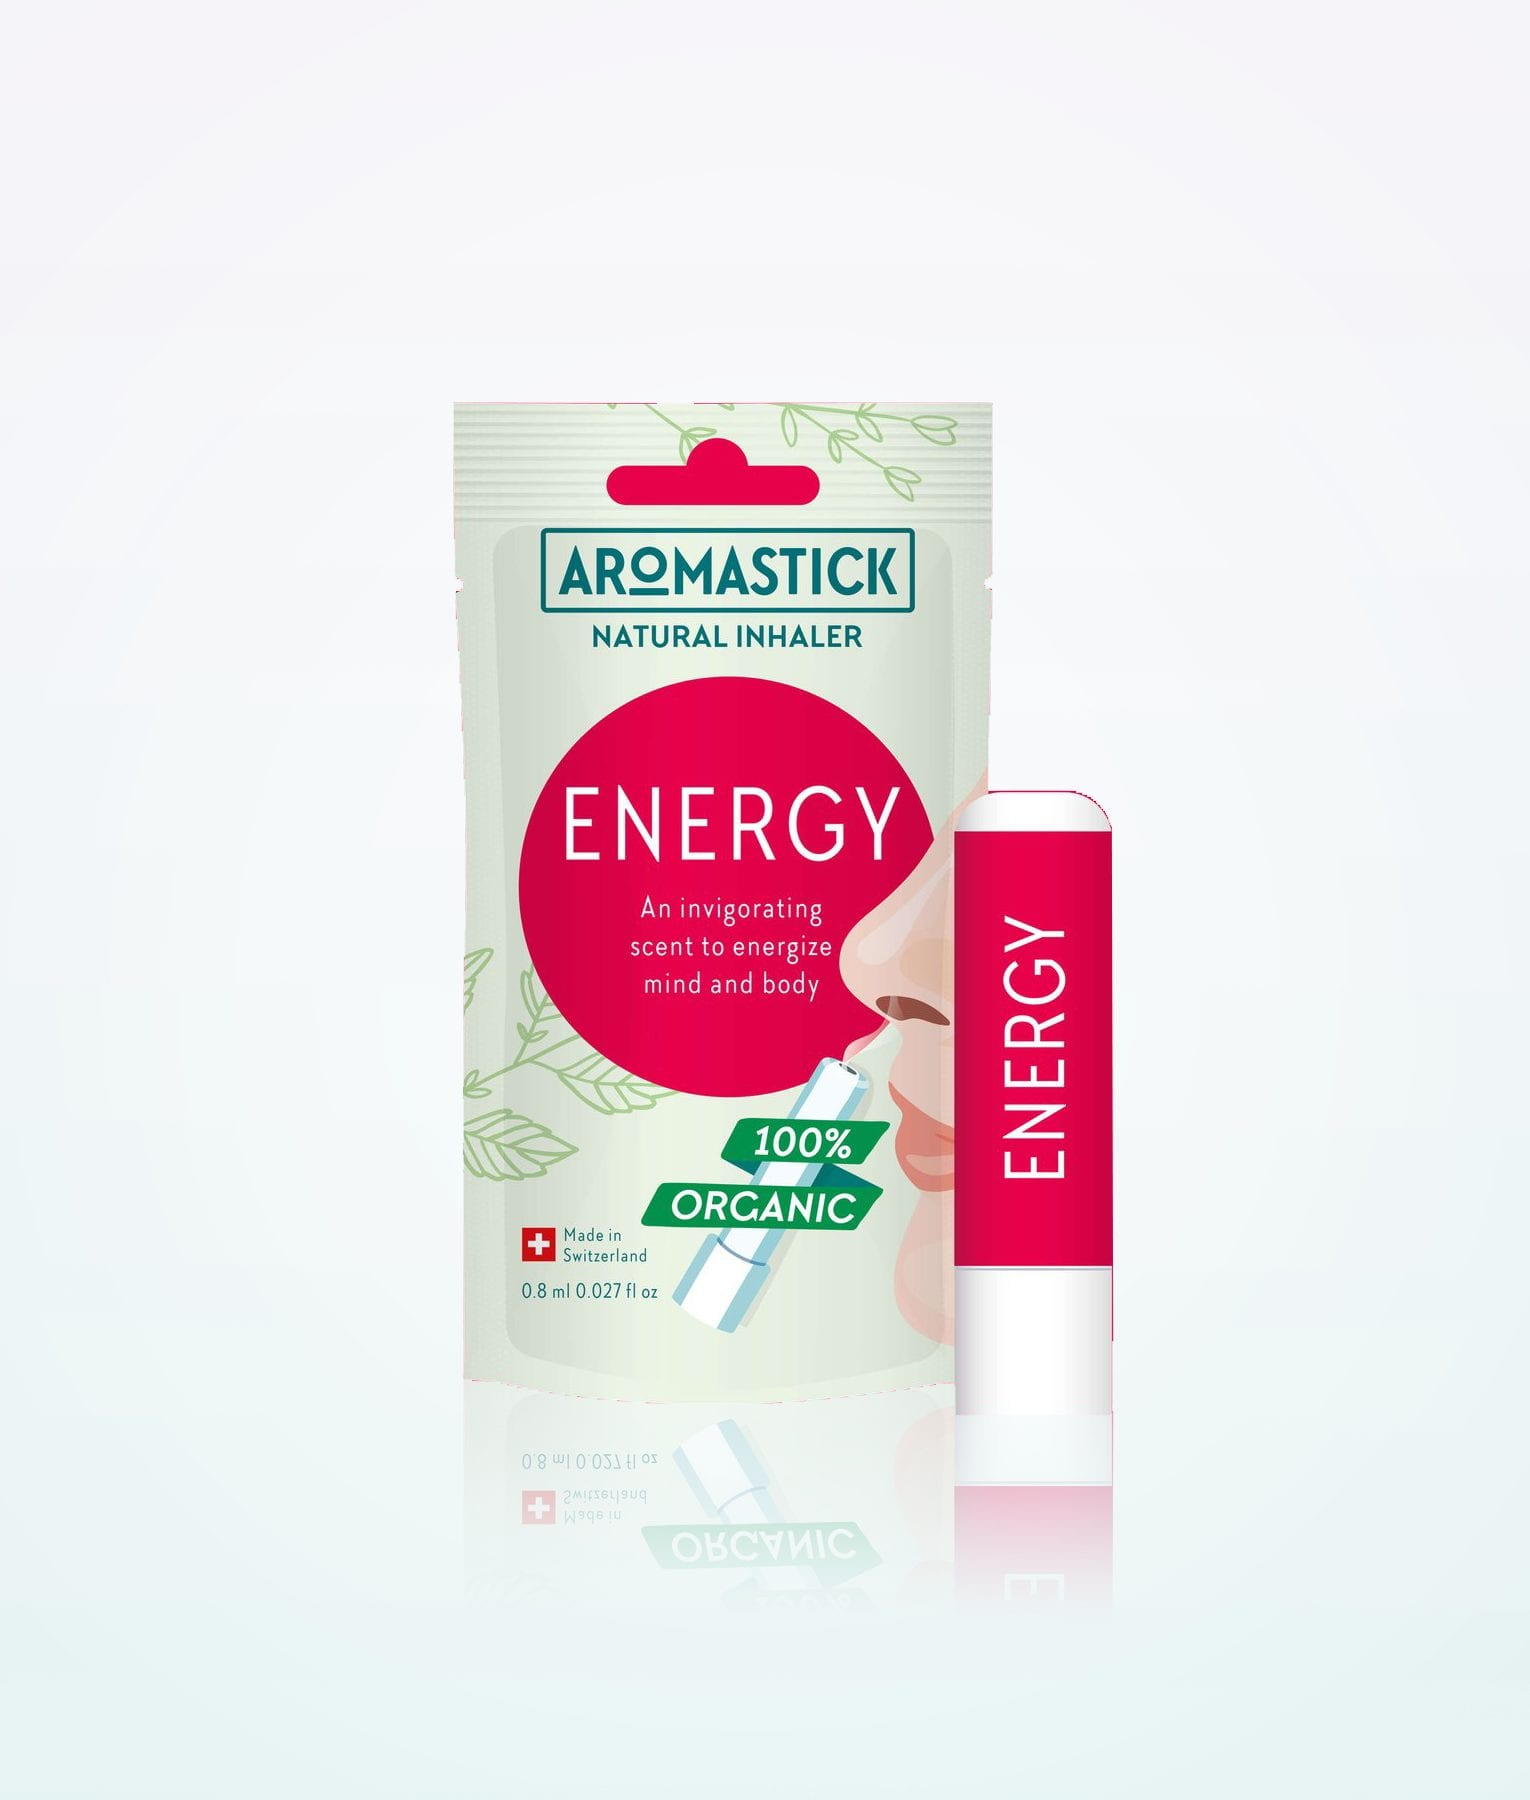 energy-aromastick-inhaler